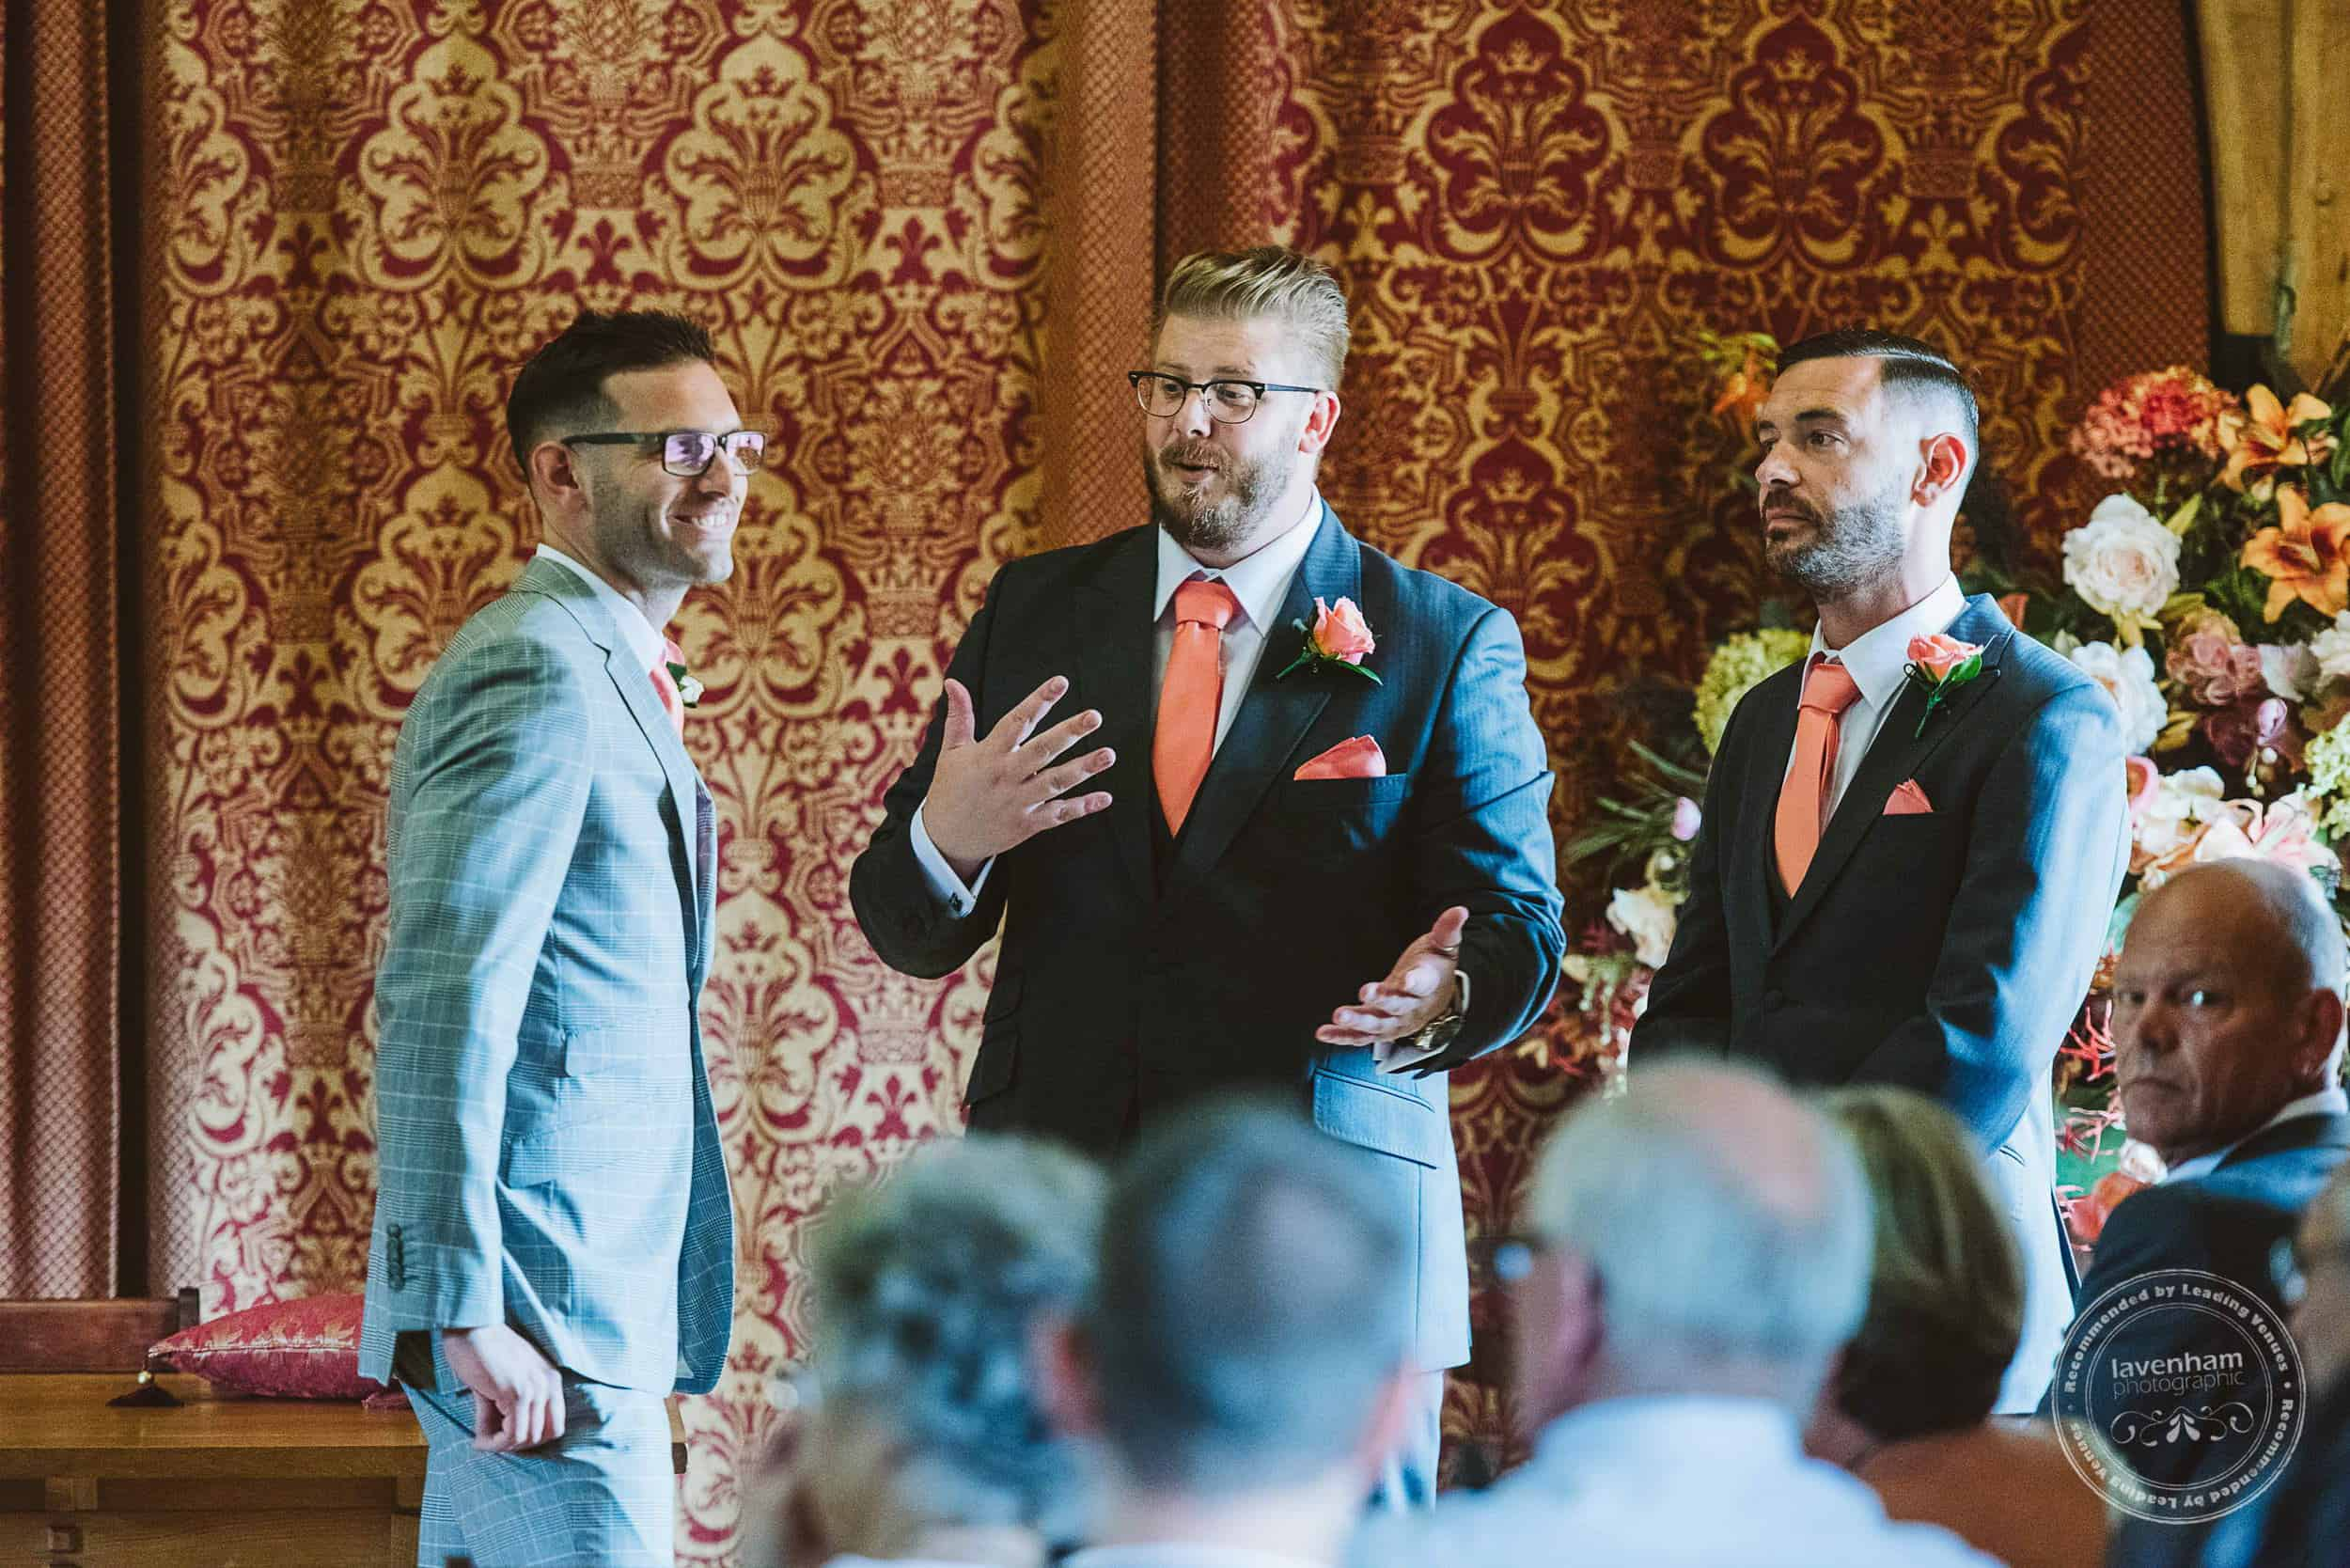 140717 Layer Marney Wedding Photography by Lavenham Photographic 033